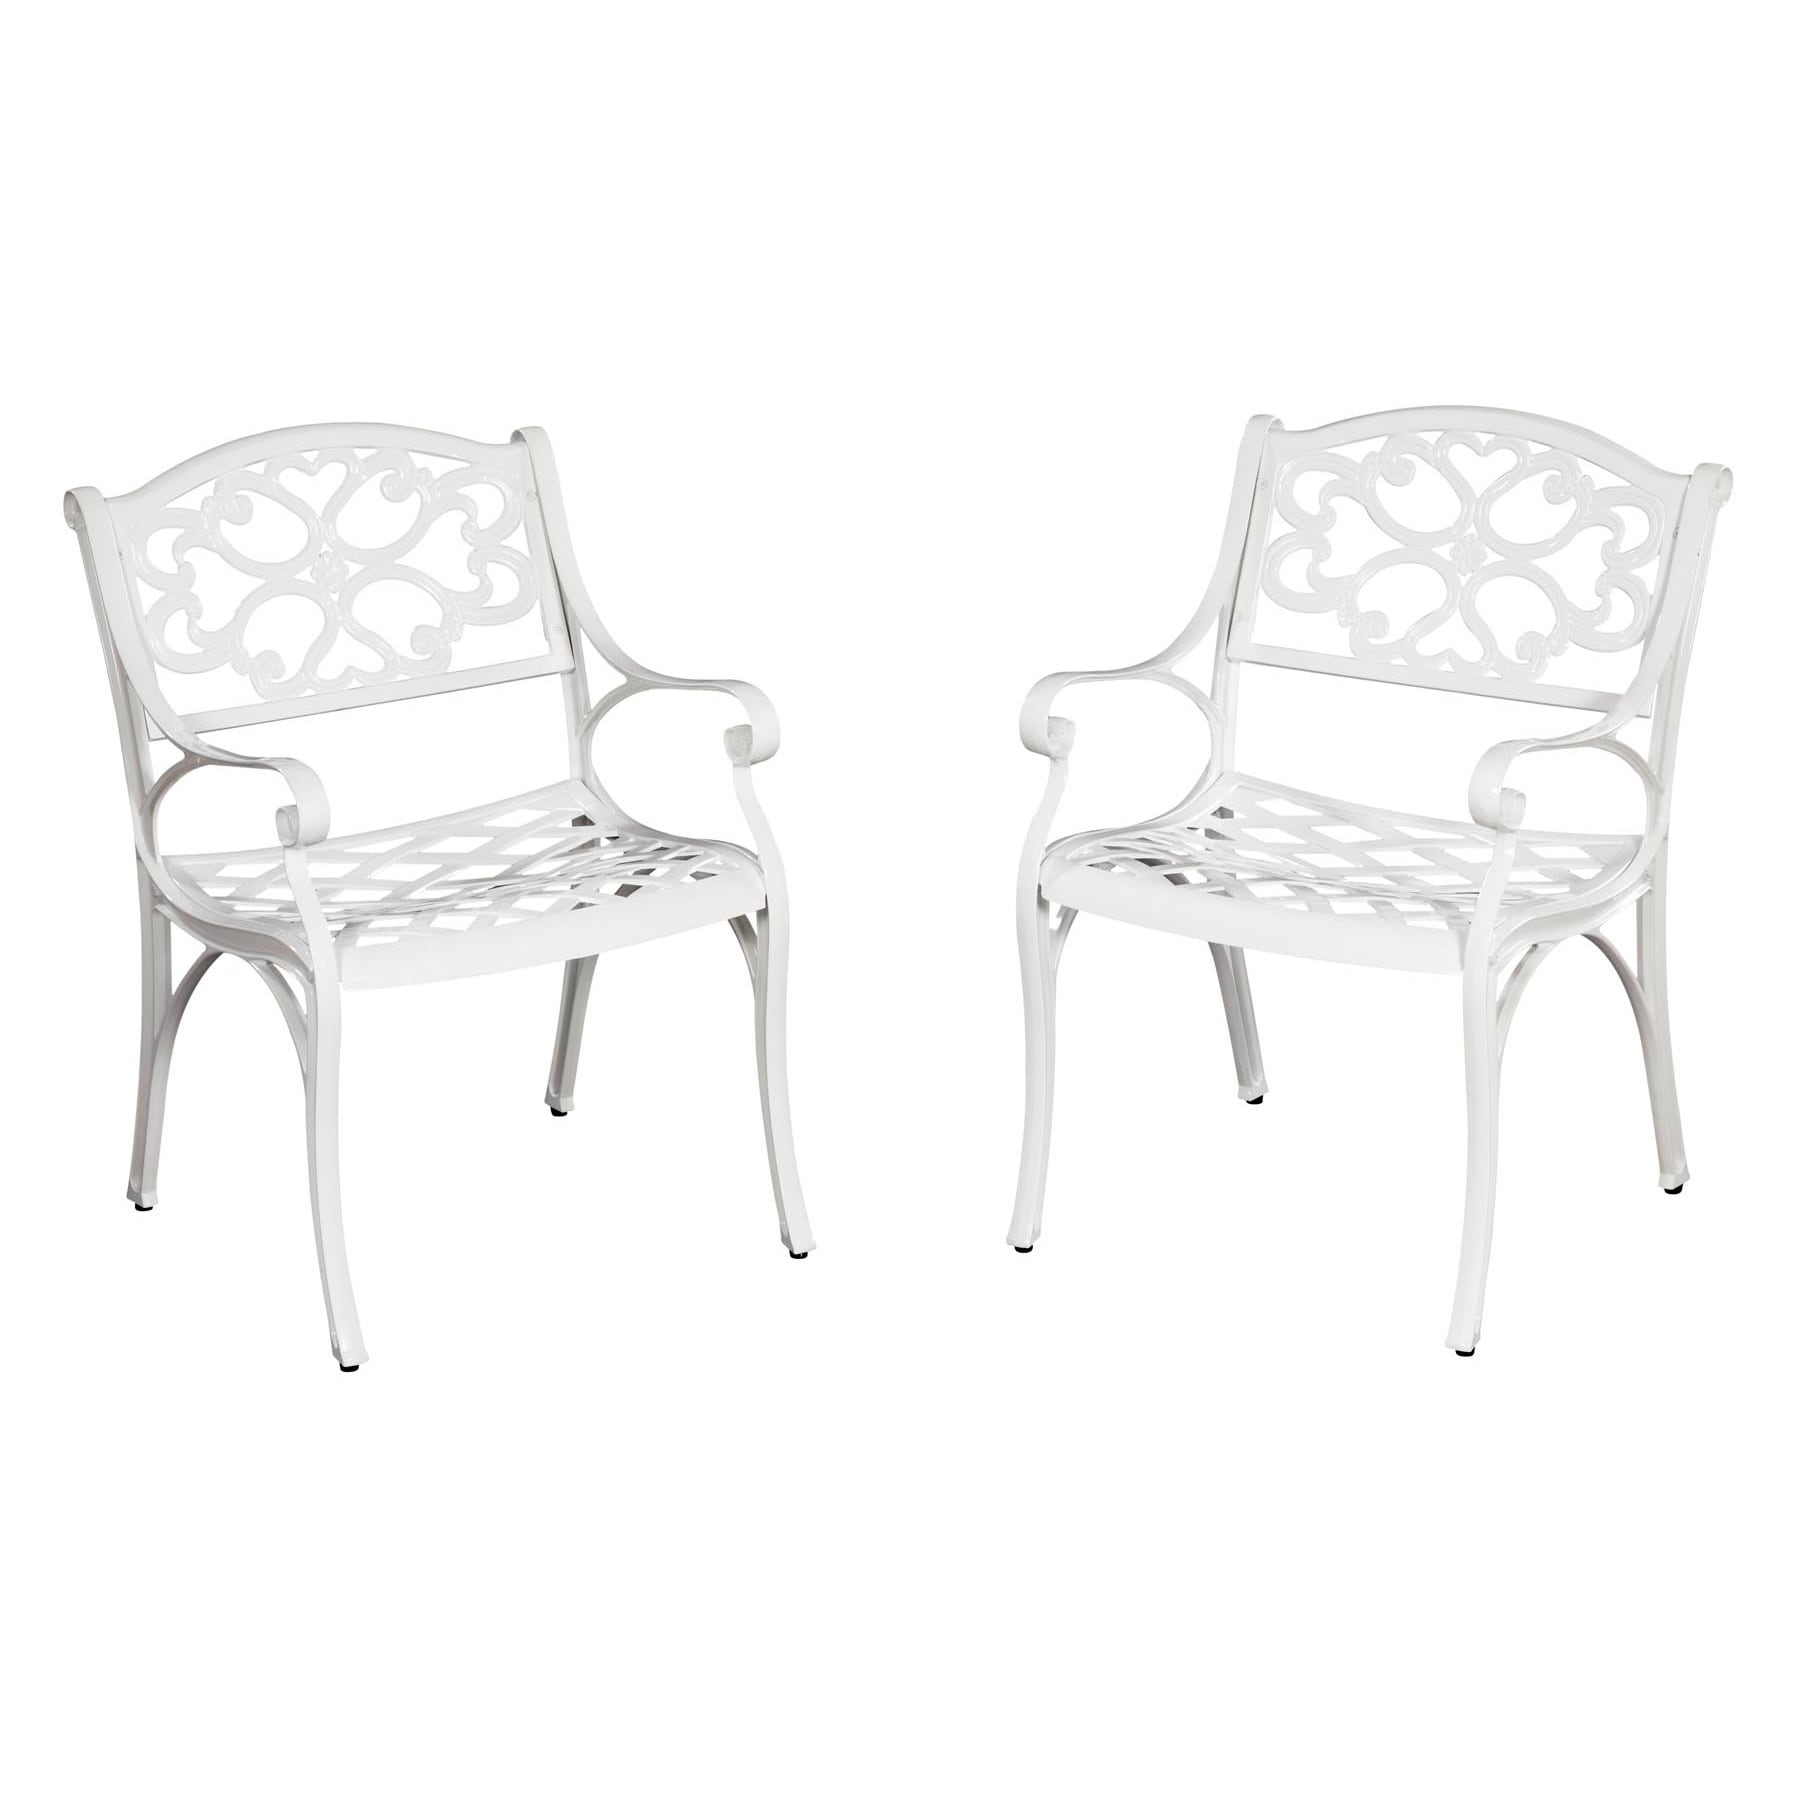 Styles Of Chairs Biscayne Cast Aluminum White Outdoor Arm Chairs Set Of 2 By Home Styles